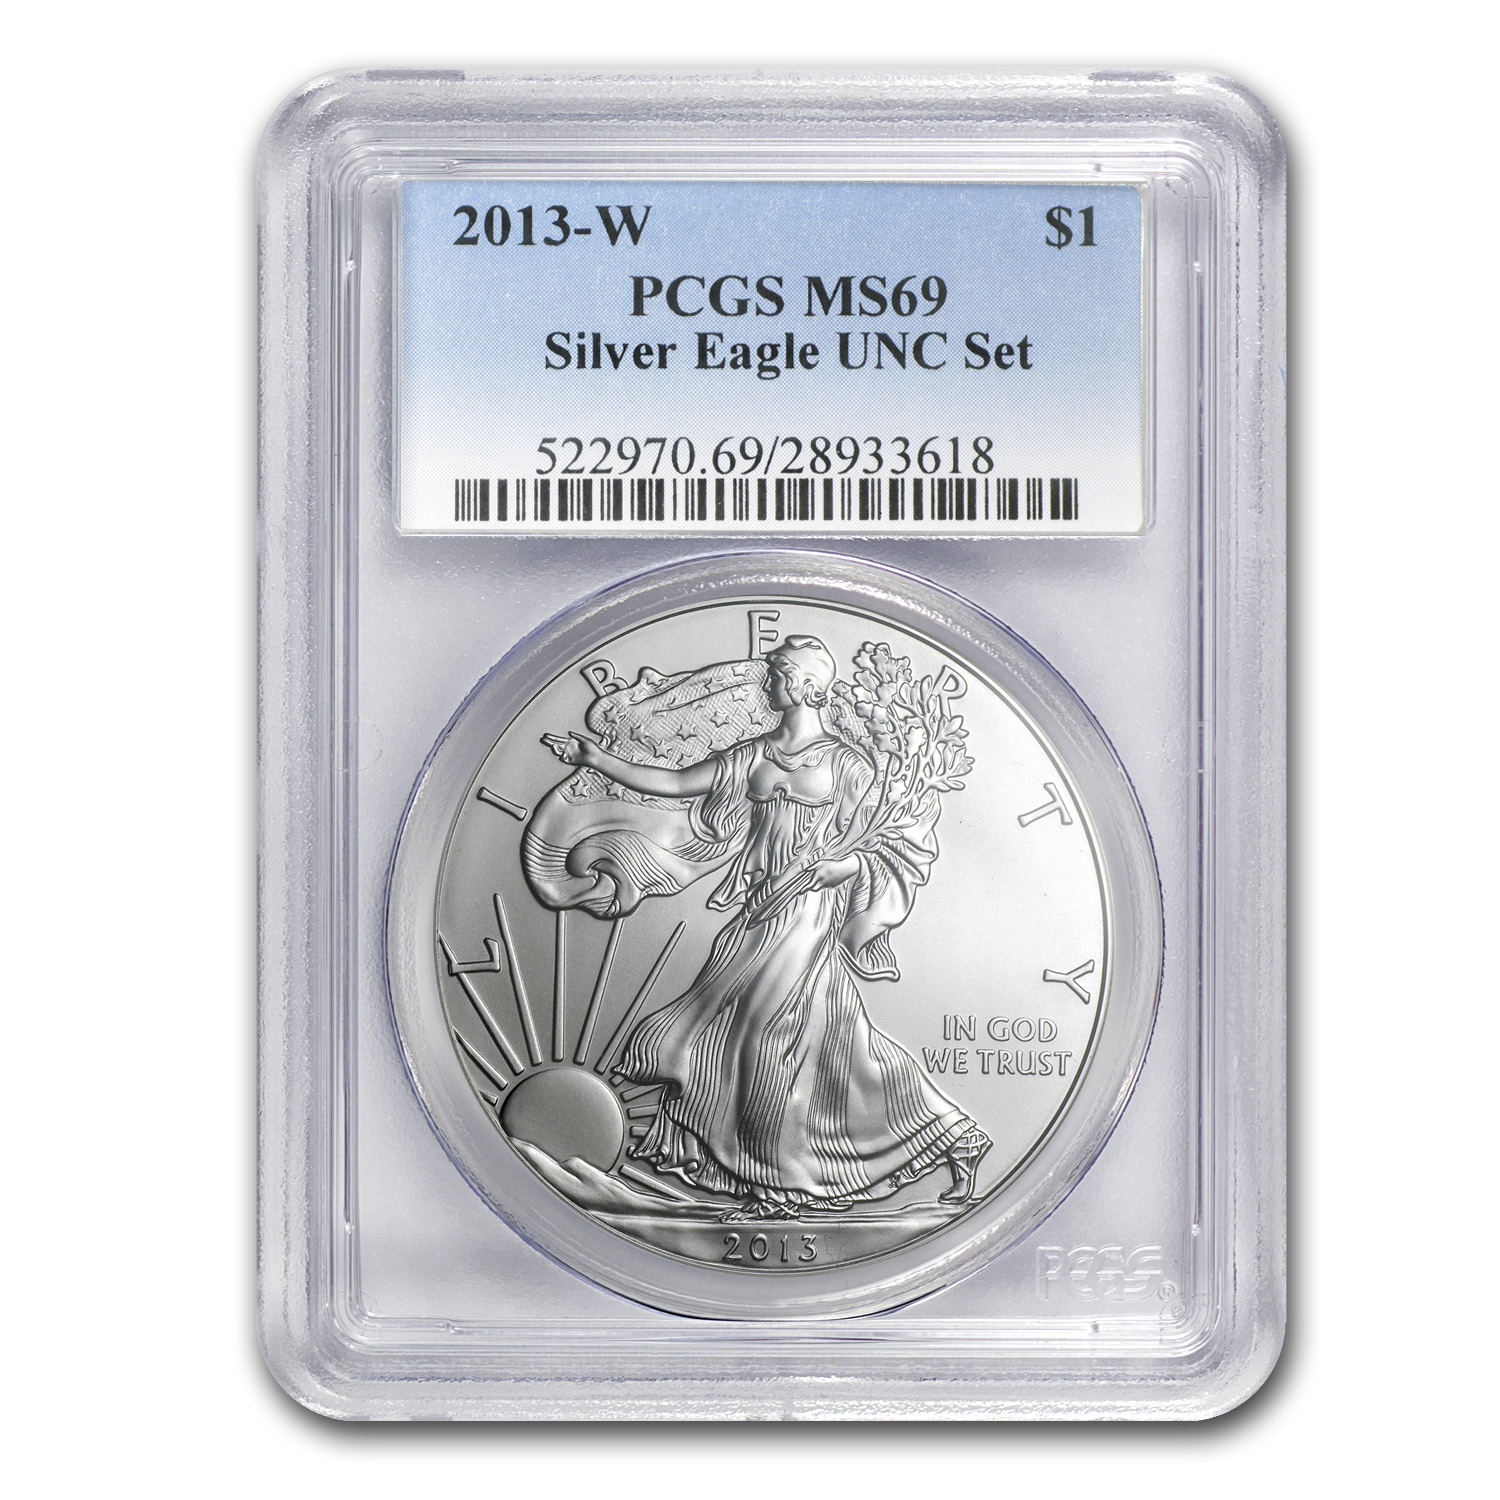 2013-W Burnished Silver American Eagle MS-69 PCGS from Unc Set